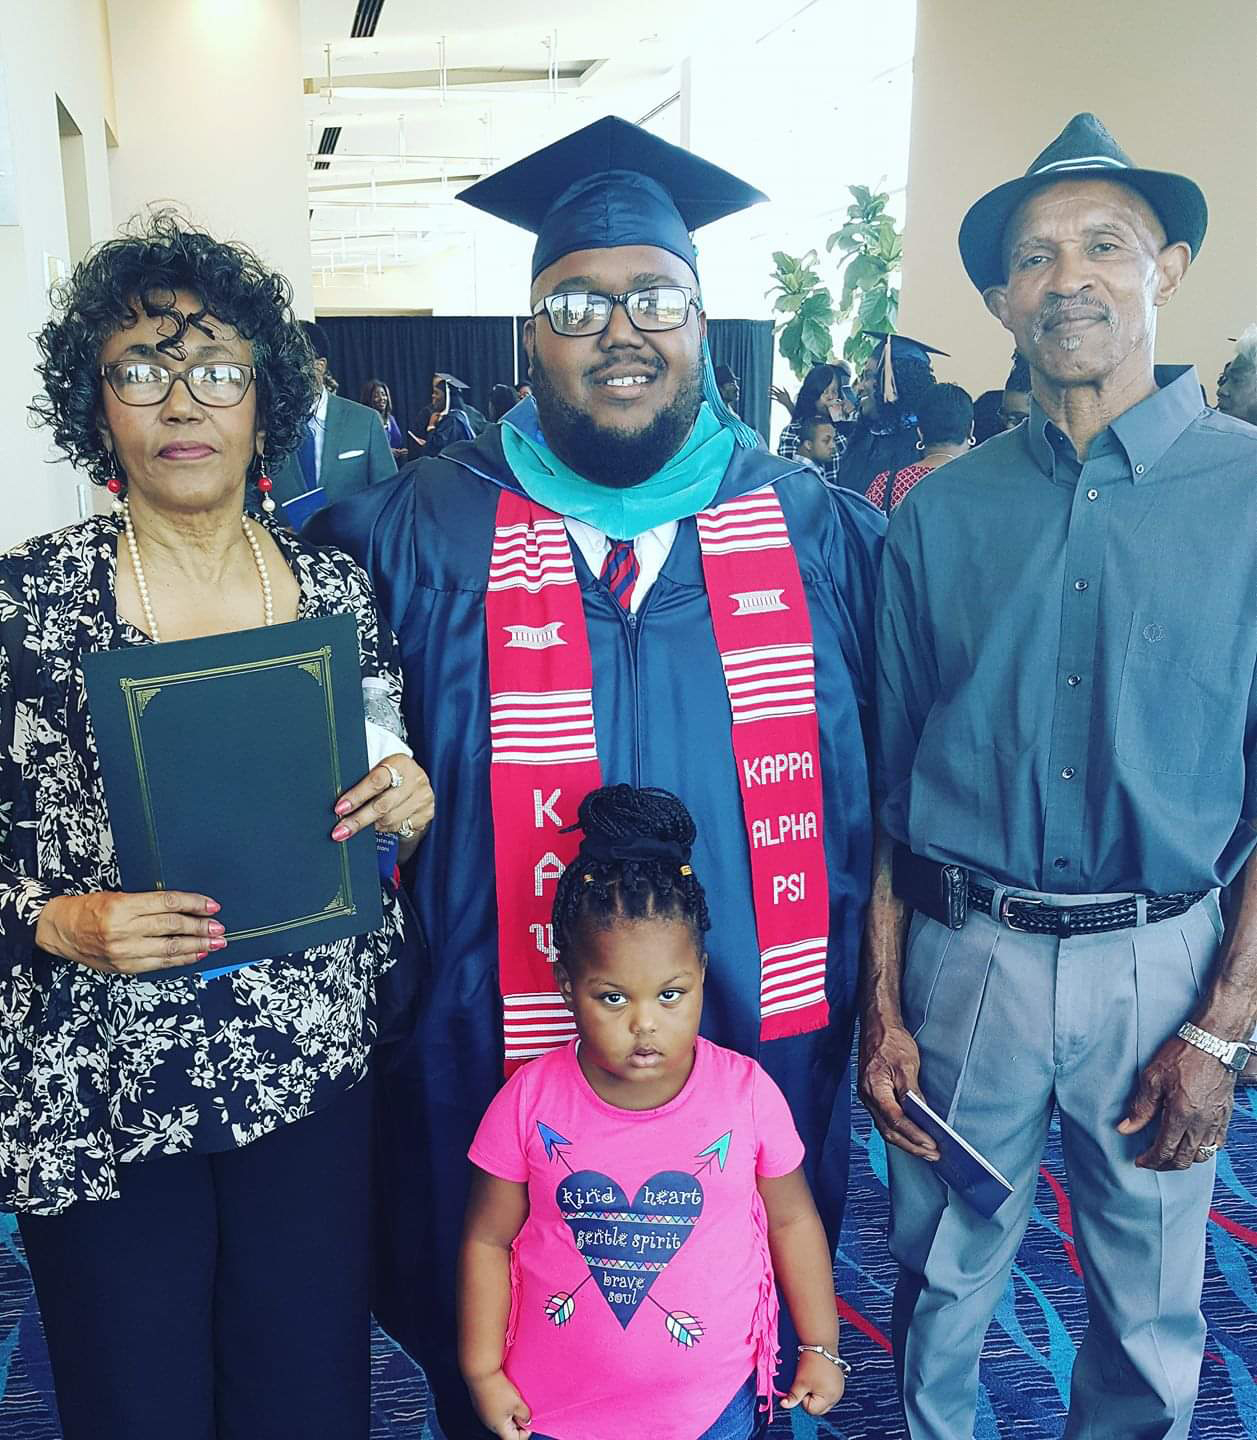 Daisy lee, lorenzo lewis, sareya and t. royal lee celebrate as lorenzo receives his Master's degree.